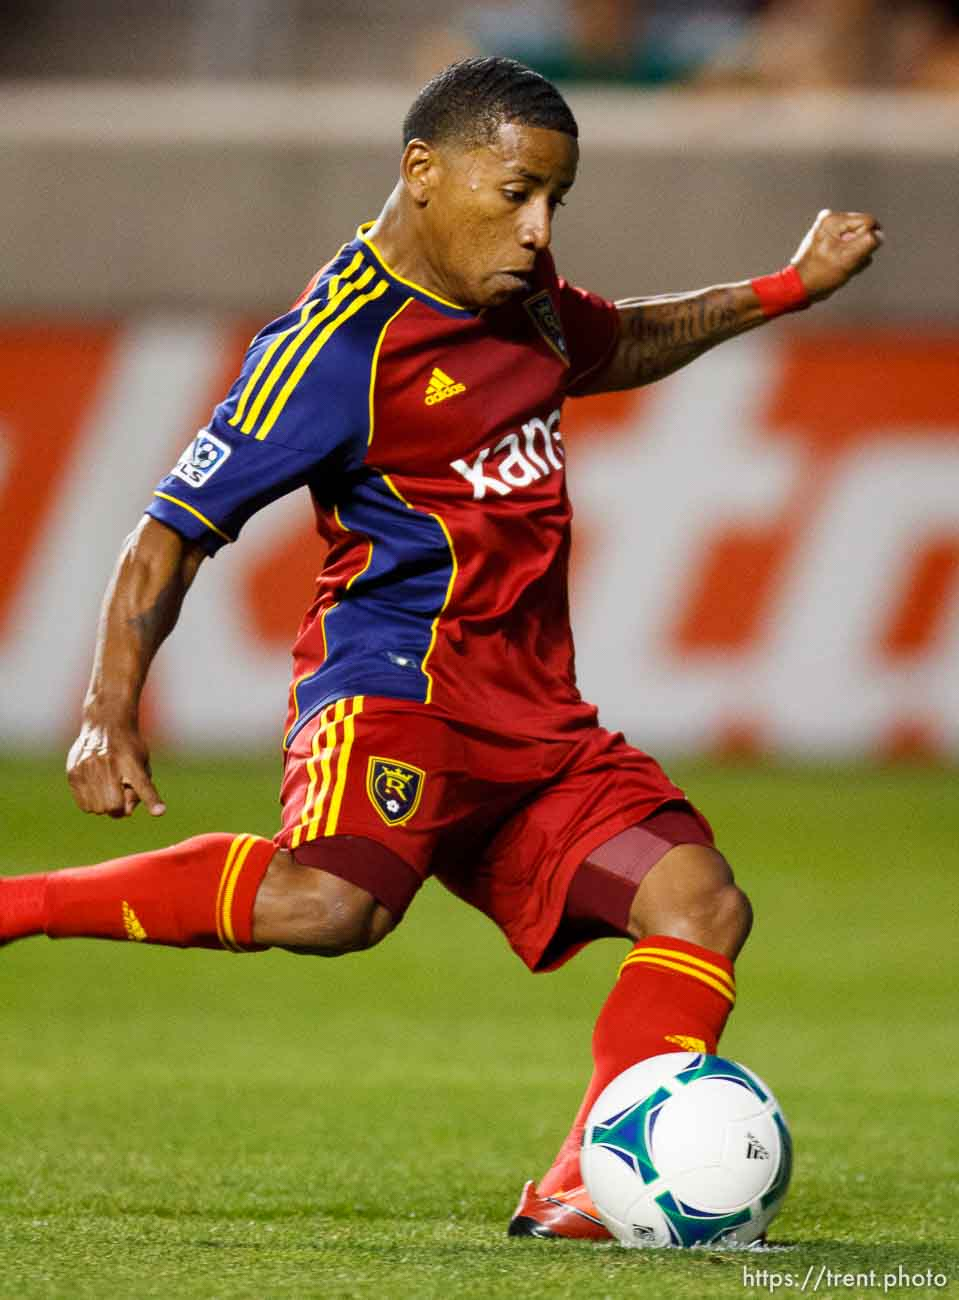 Trent Nelson | The Salt Lake Tribune Real Salt Lake's Joao Plata scores a second half goal as Real Salt Lake hosts Charleston Battery in the US Open Cup Wednesday June 12, 2013 at Rio Tinto Stadium in Sandy, Utah.